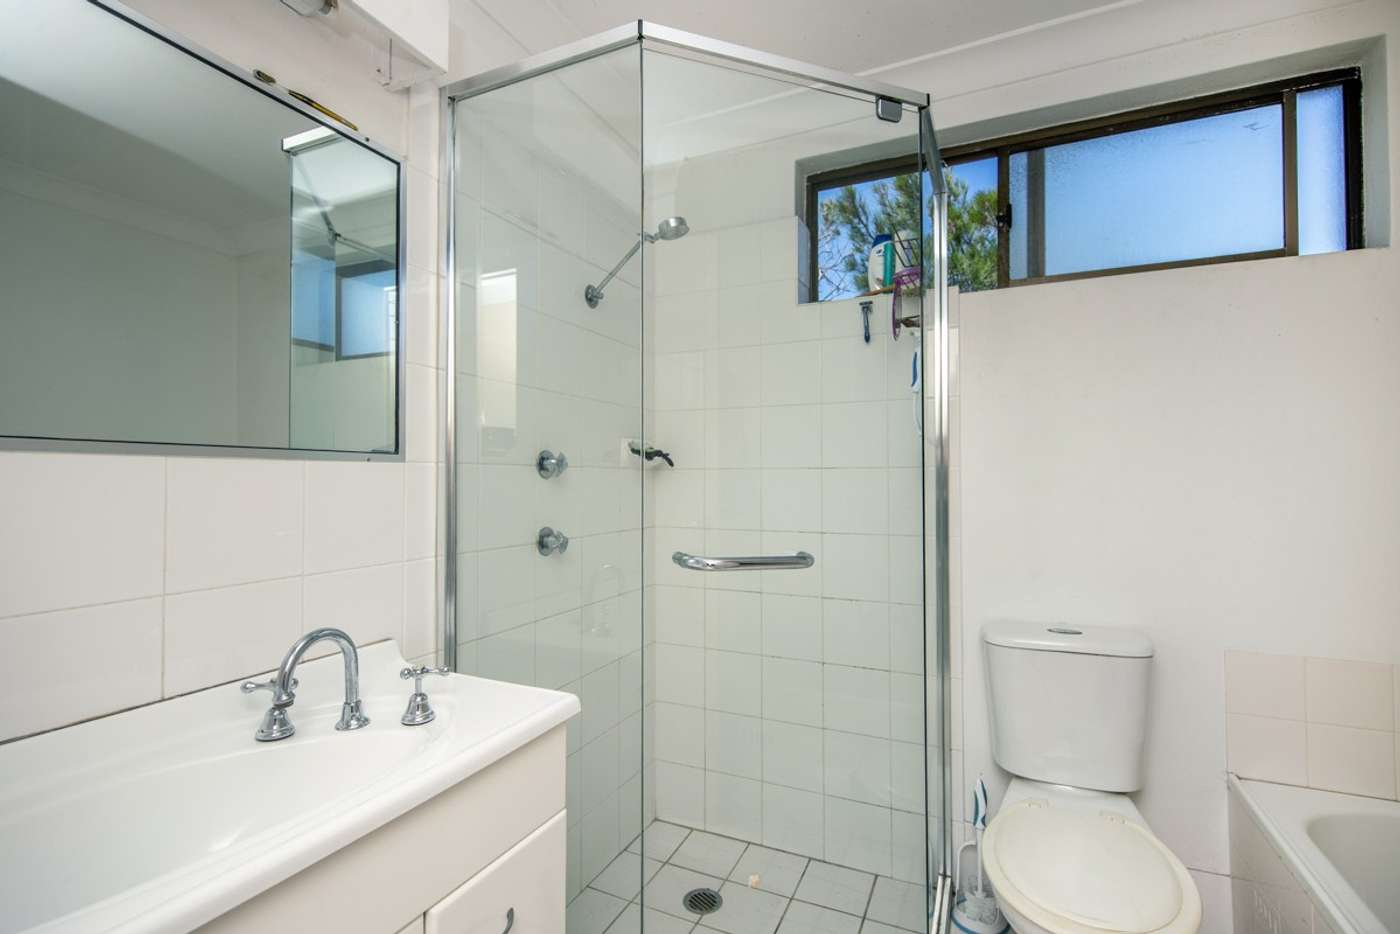 Seventh view of Homely unit listing, 5/195 Darby Street, Cooks Hill NSW 2300